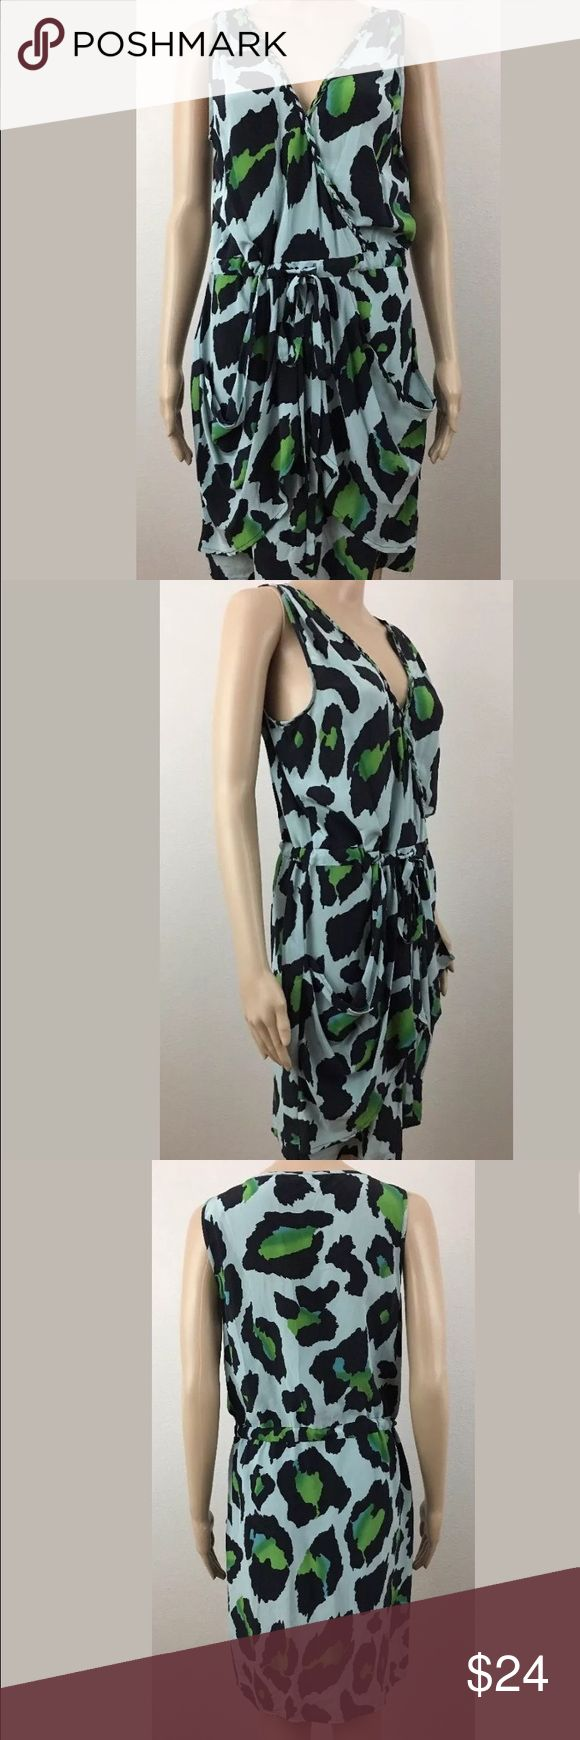 Charlie Jade Animal Print Silk Dress Size M Excellent condition. charlie Jade  Dresses